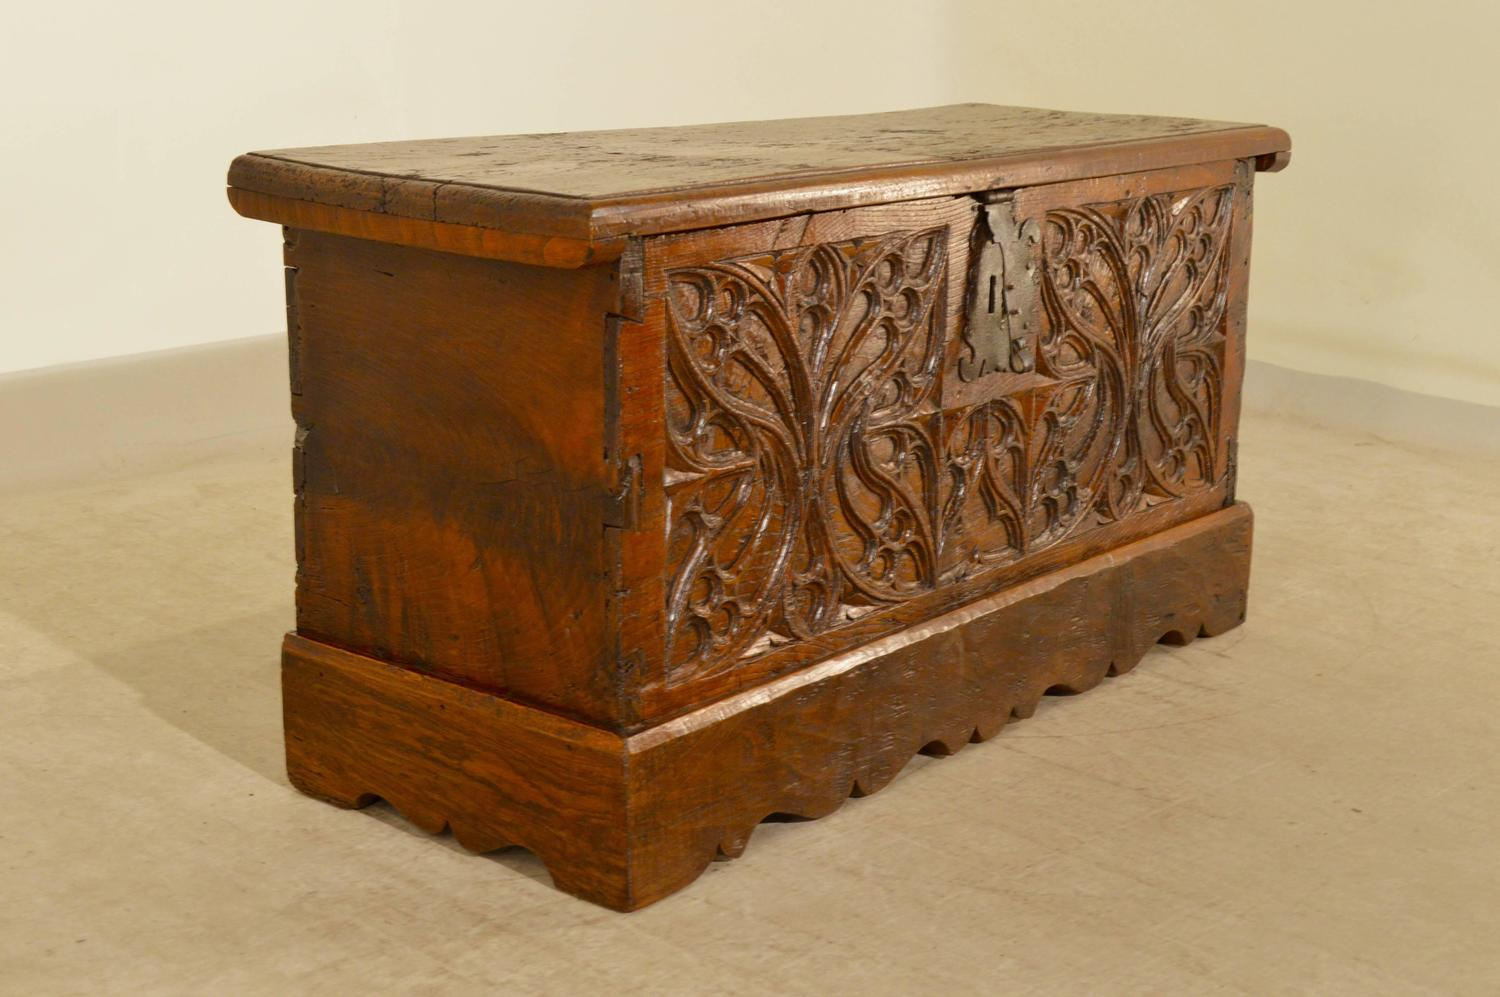 Early 17th century french walnut blanket chest for sale at - 17th century french cuisine ...